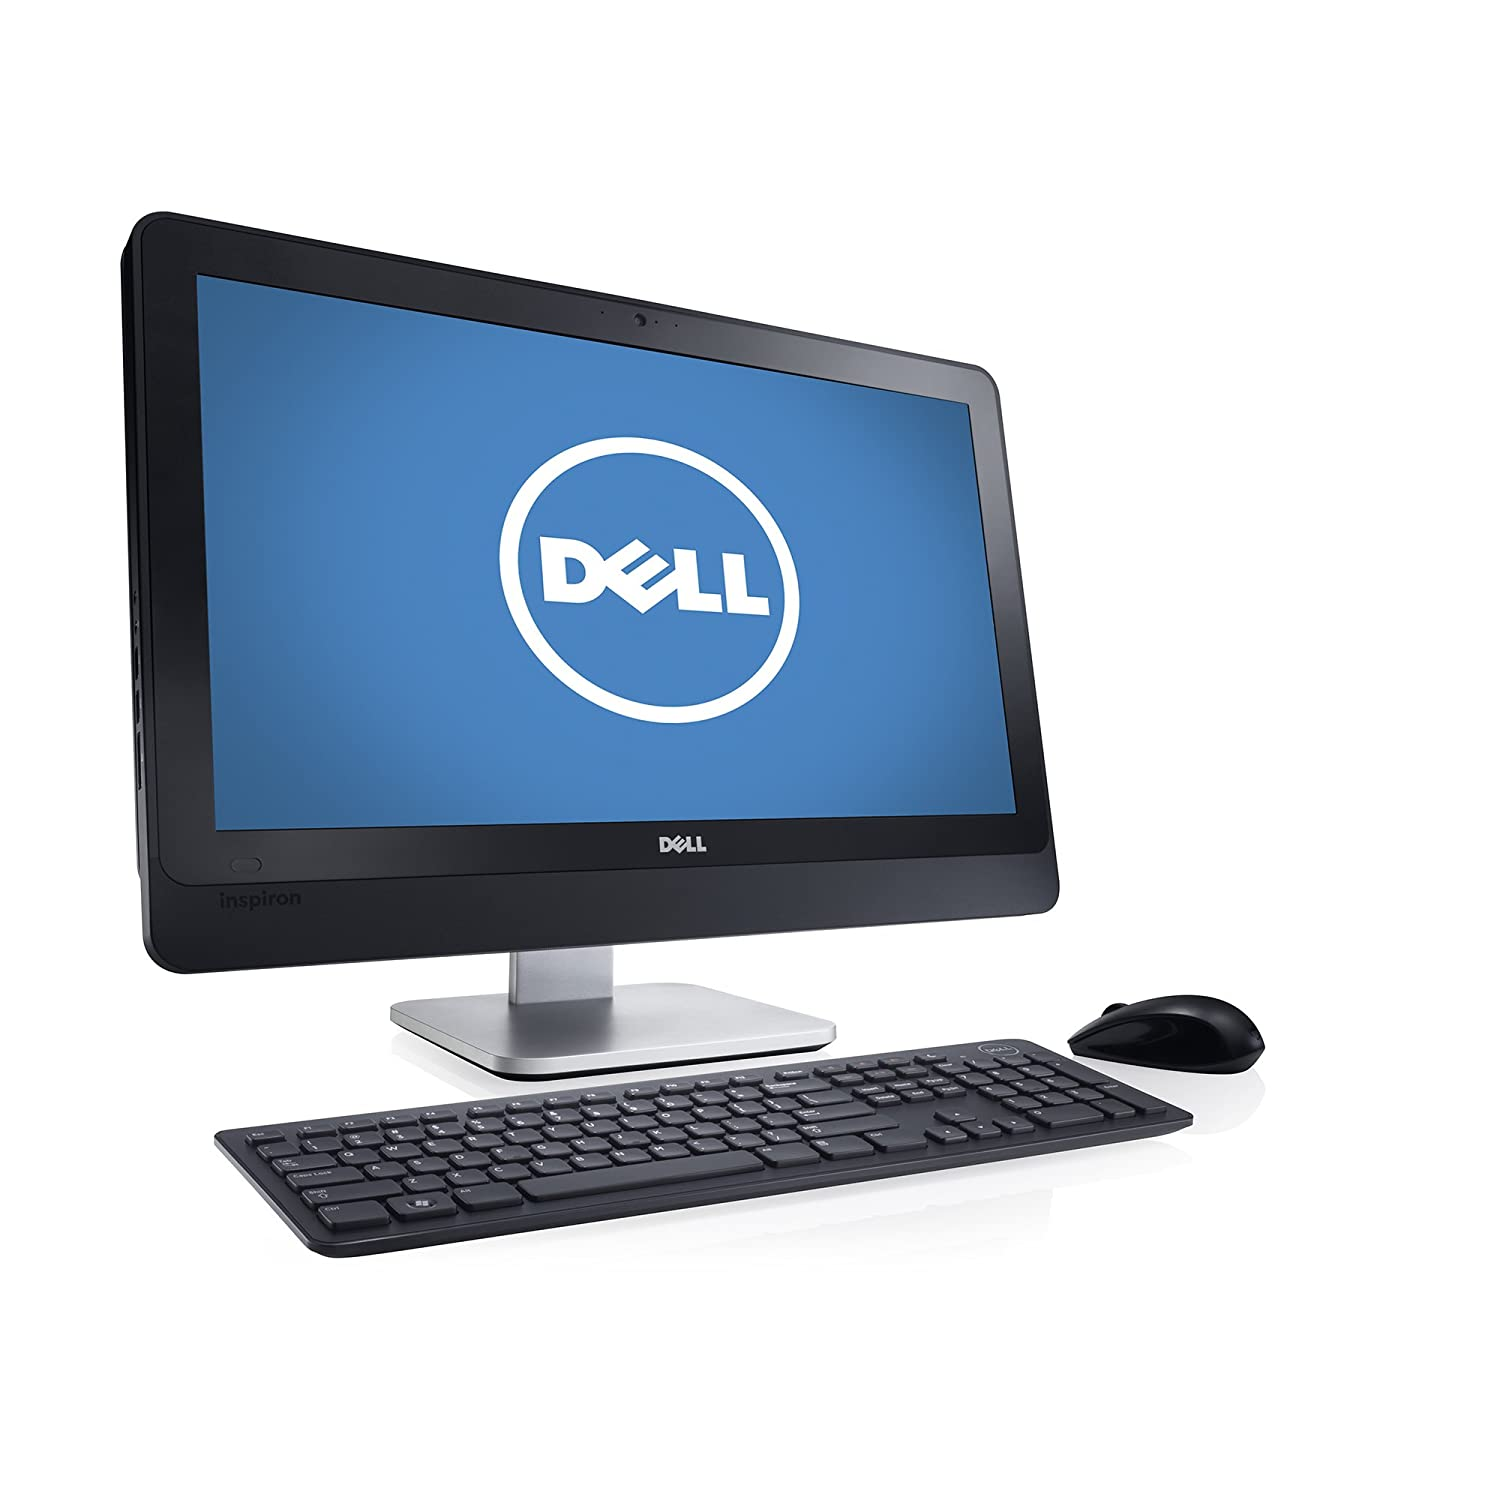 Dell Inspiron 2330io 2330T-5000BK 23-Inch All-in-One Touchscreen Desktop